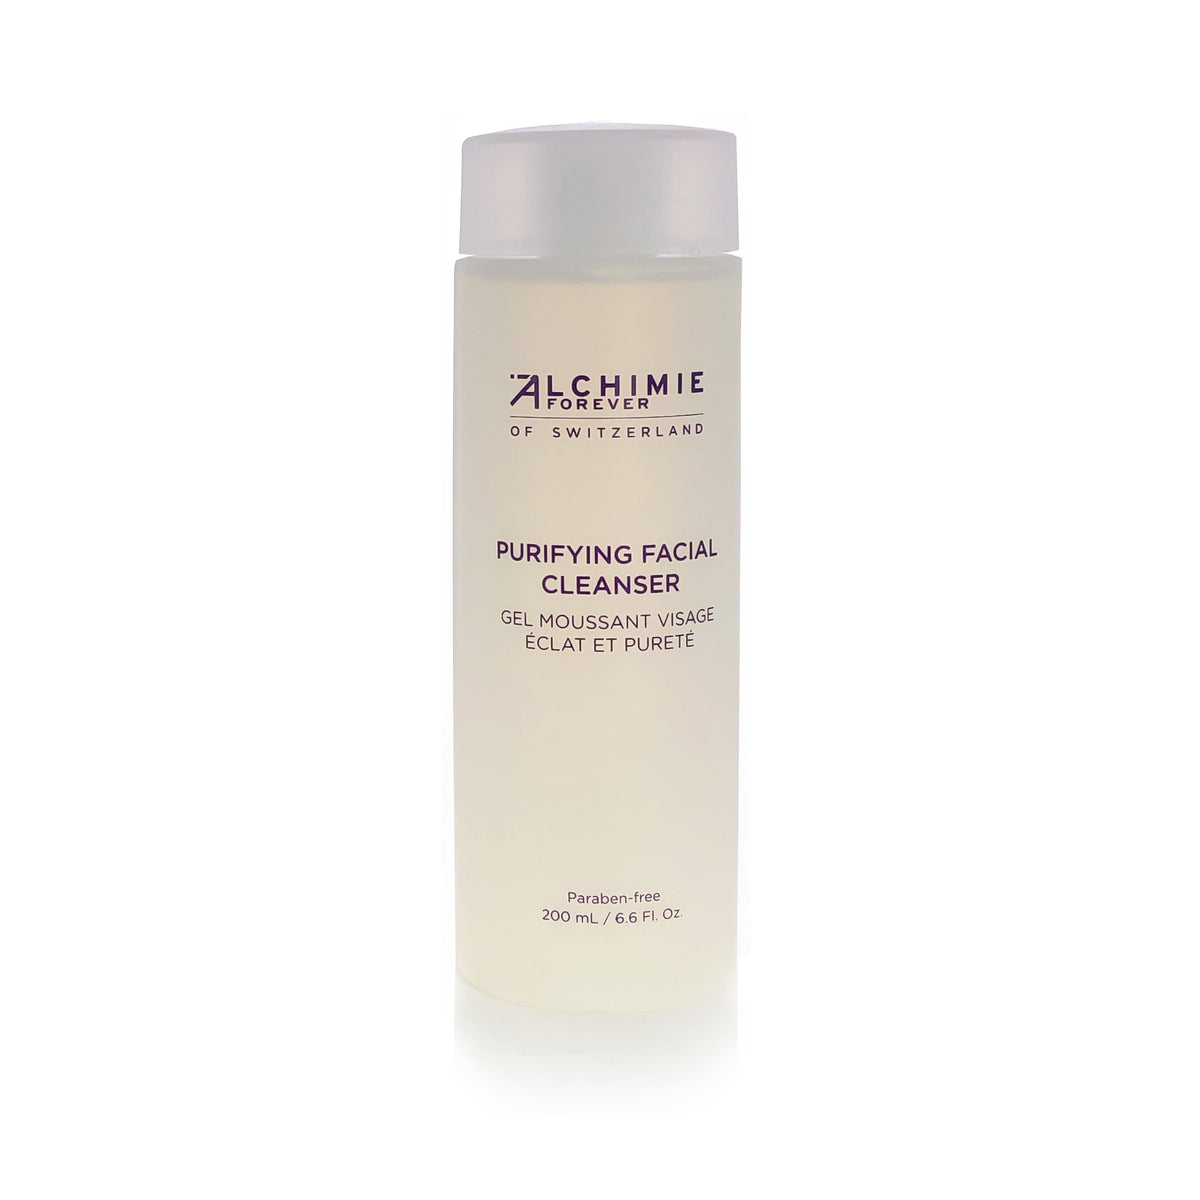 Alchimie Forever Purifying Facial Cleanser / 6.6oz